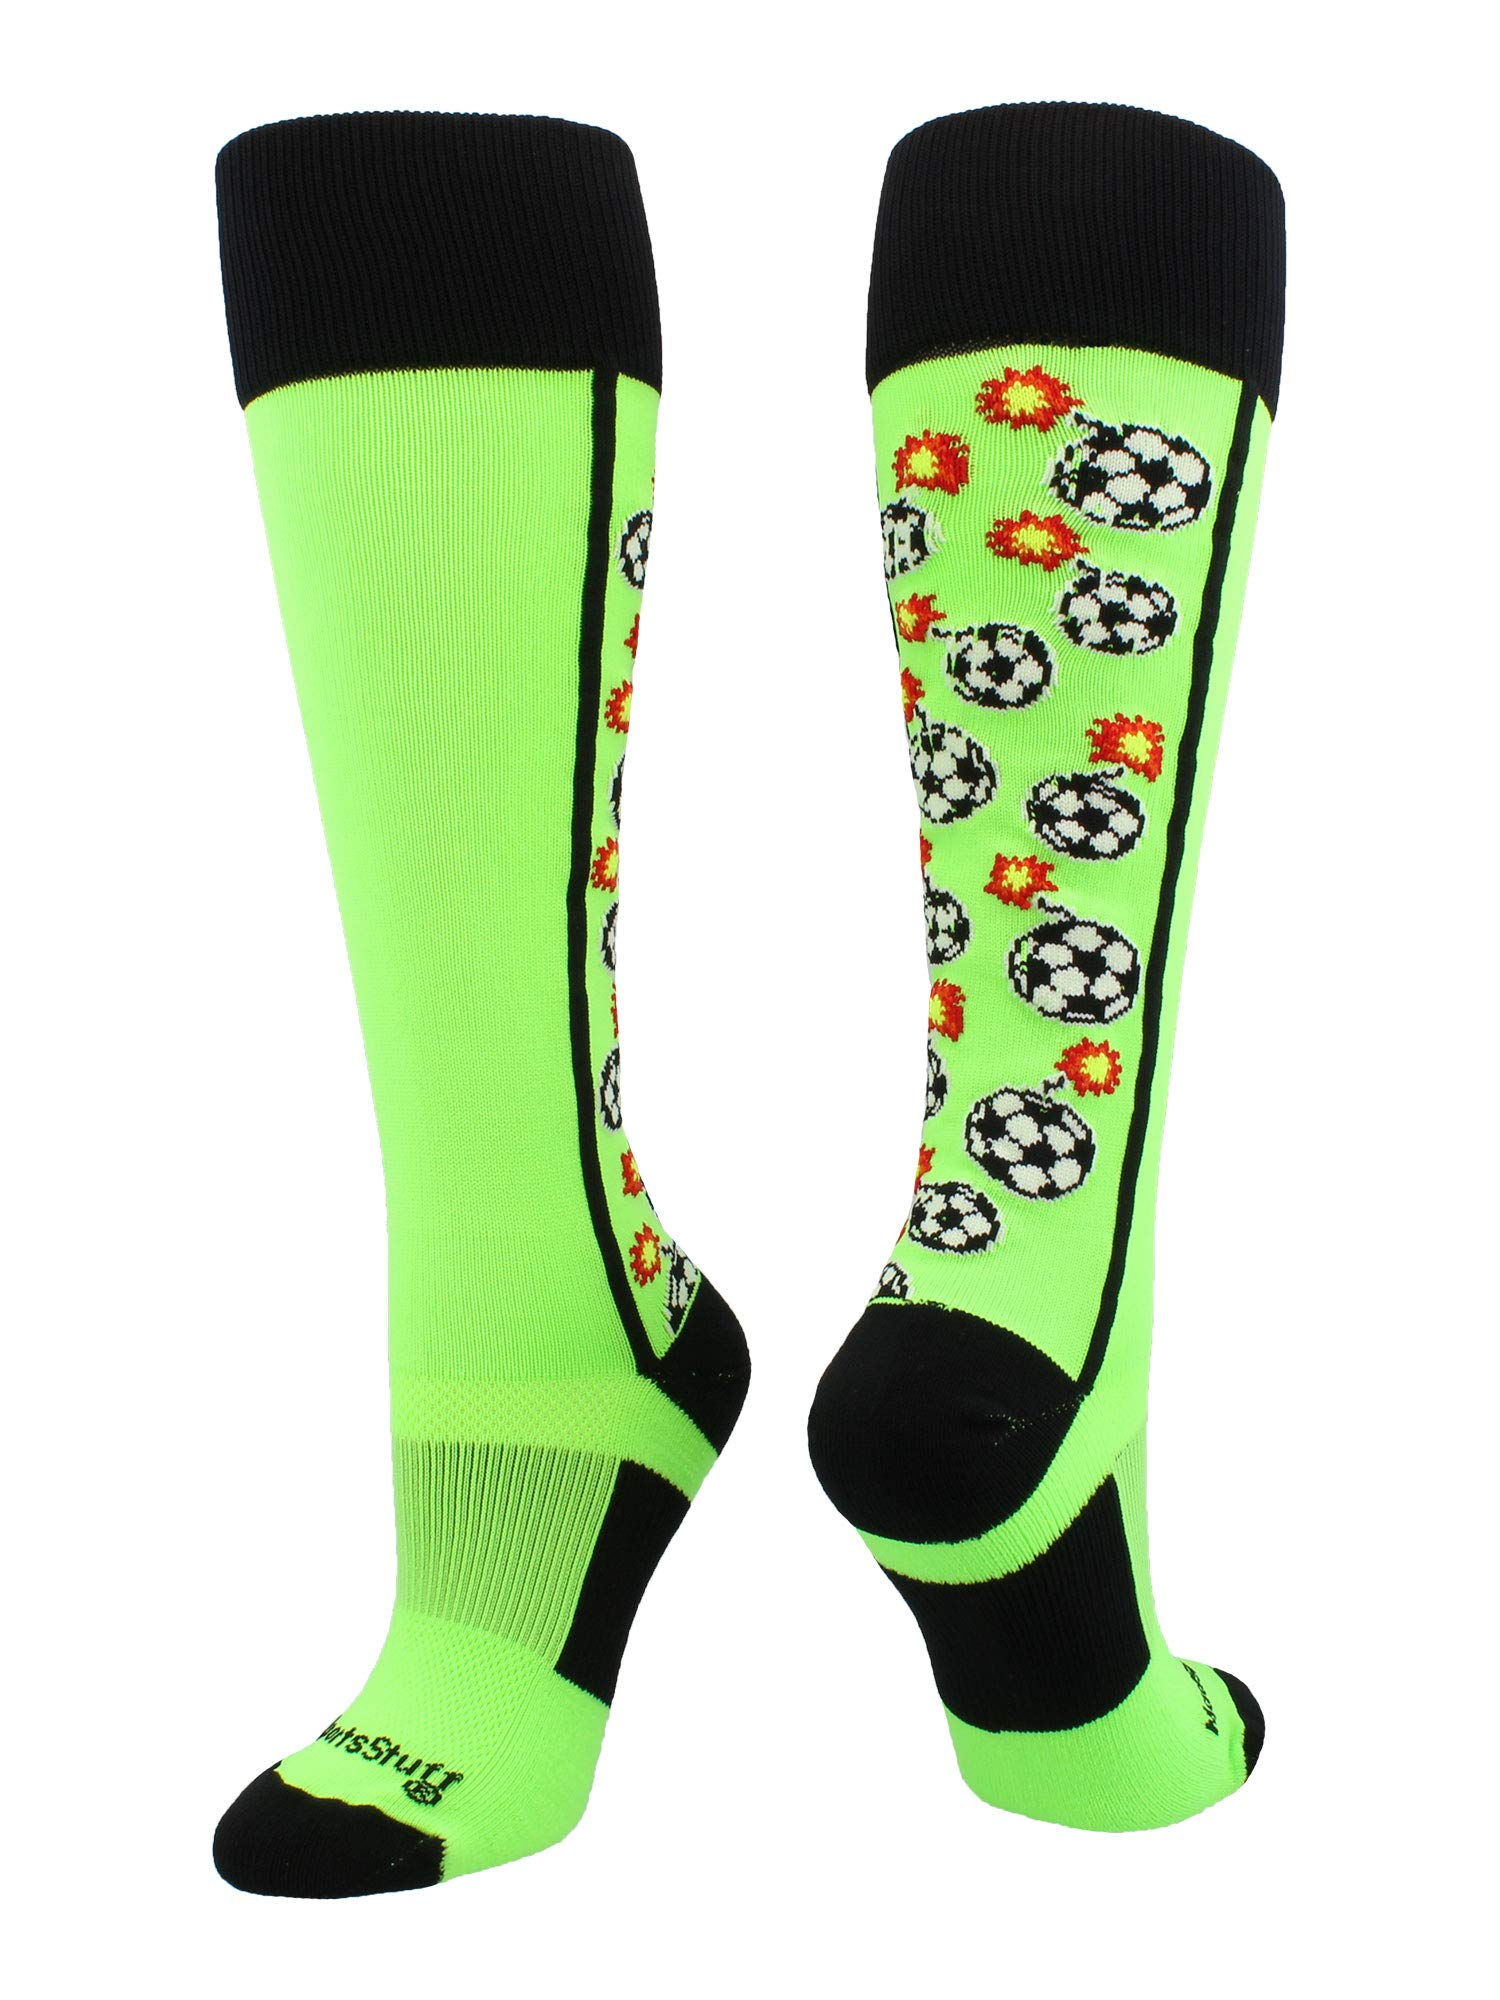 MadSportsStuff Crazy Bomber Soccer Socks (Neon Green/Black, Small)